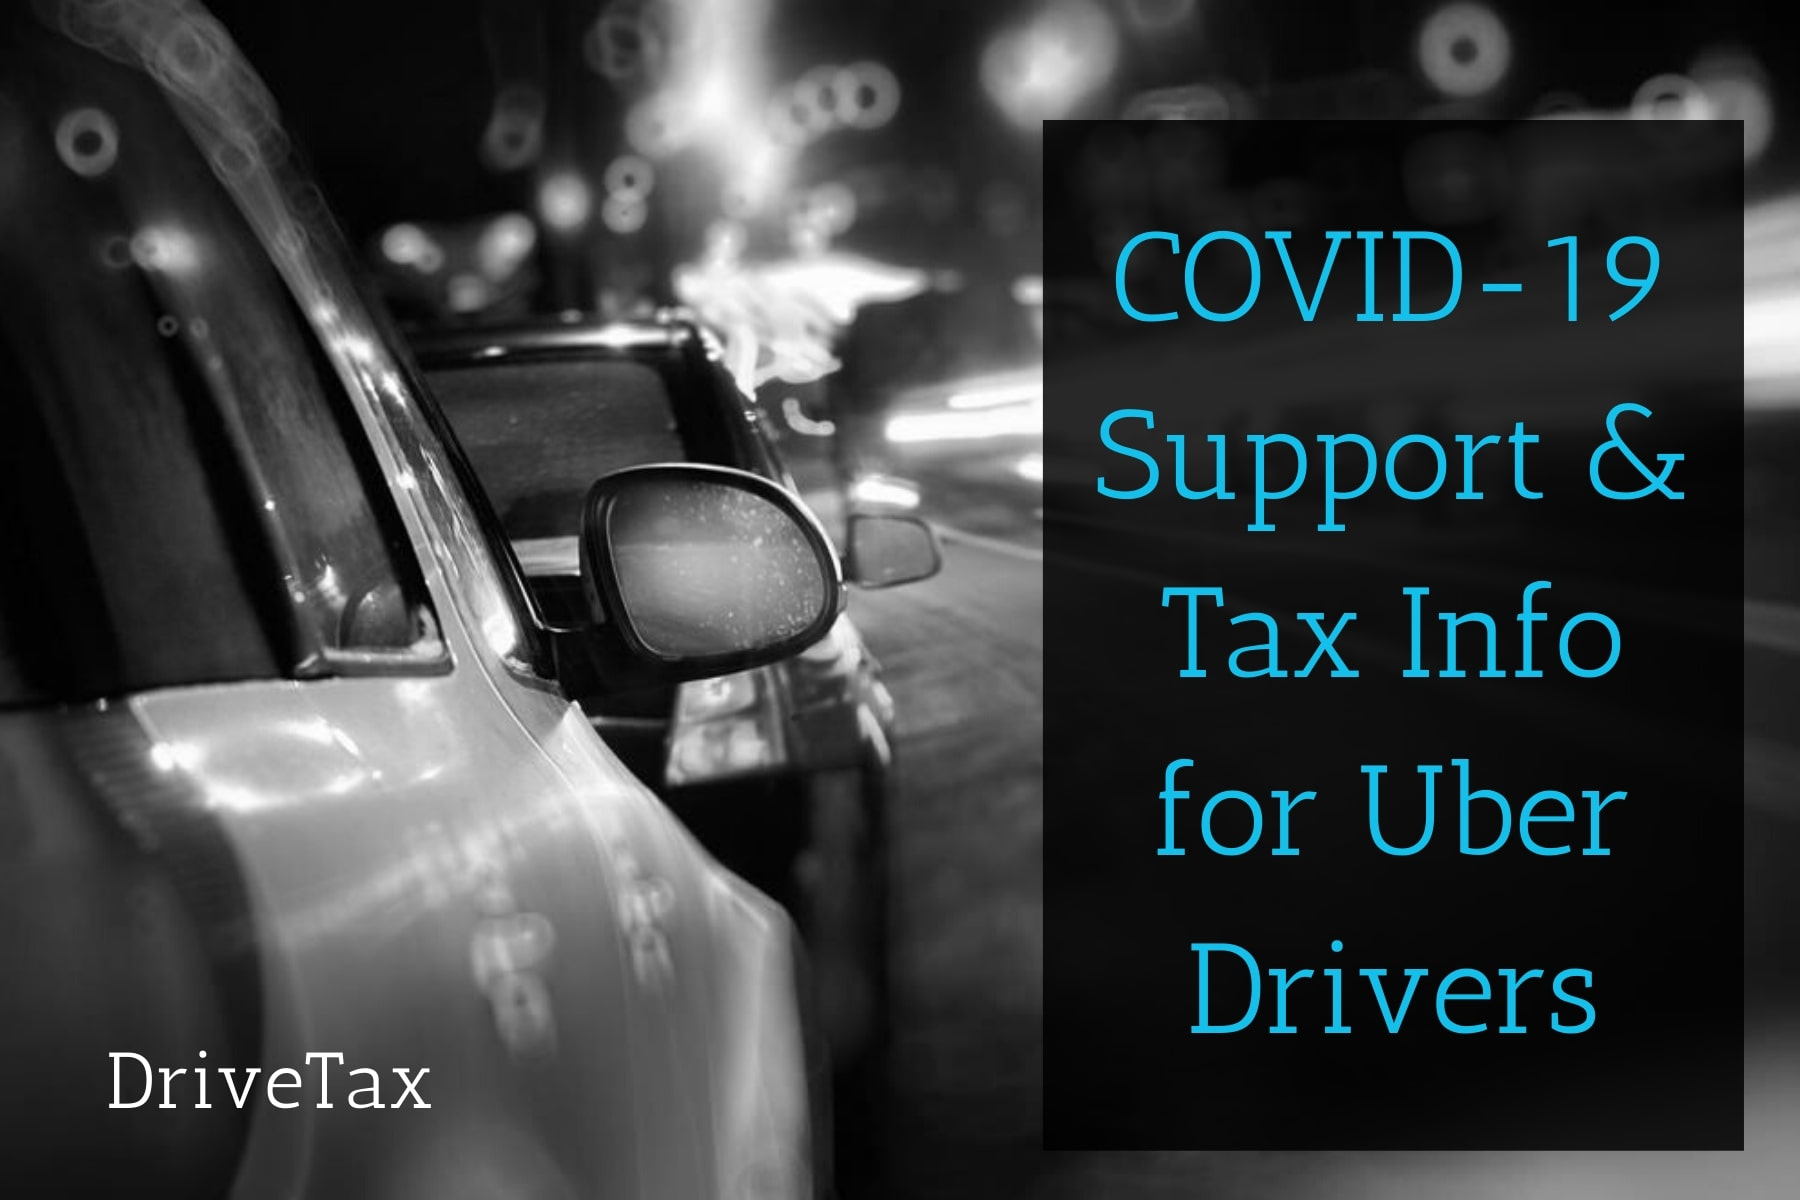 Uber & Rideshare COVID-19 & Coronavirus Welfare Support & Tax Breaks